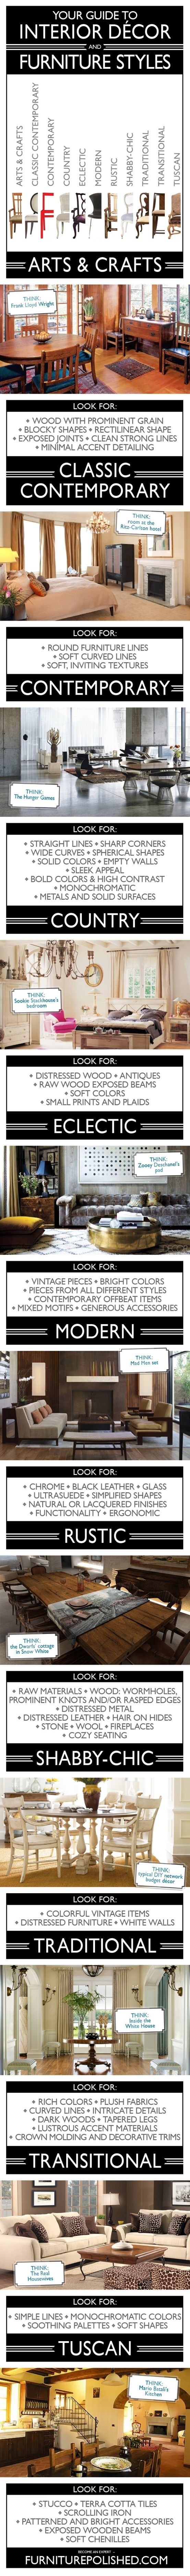 A lot of people interpret styles differently...but this gives people a general idea. Interior Decor & Furniture Styles Guide